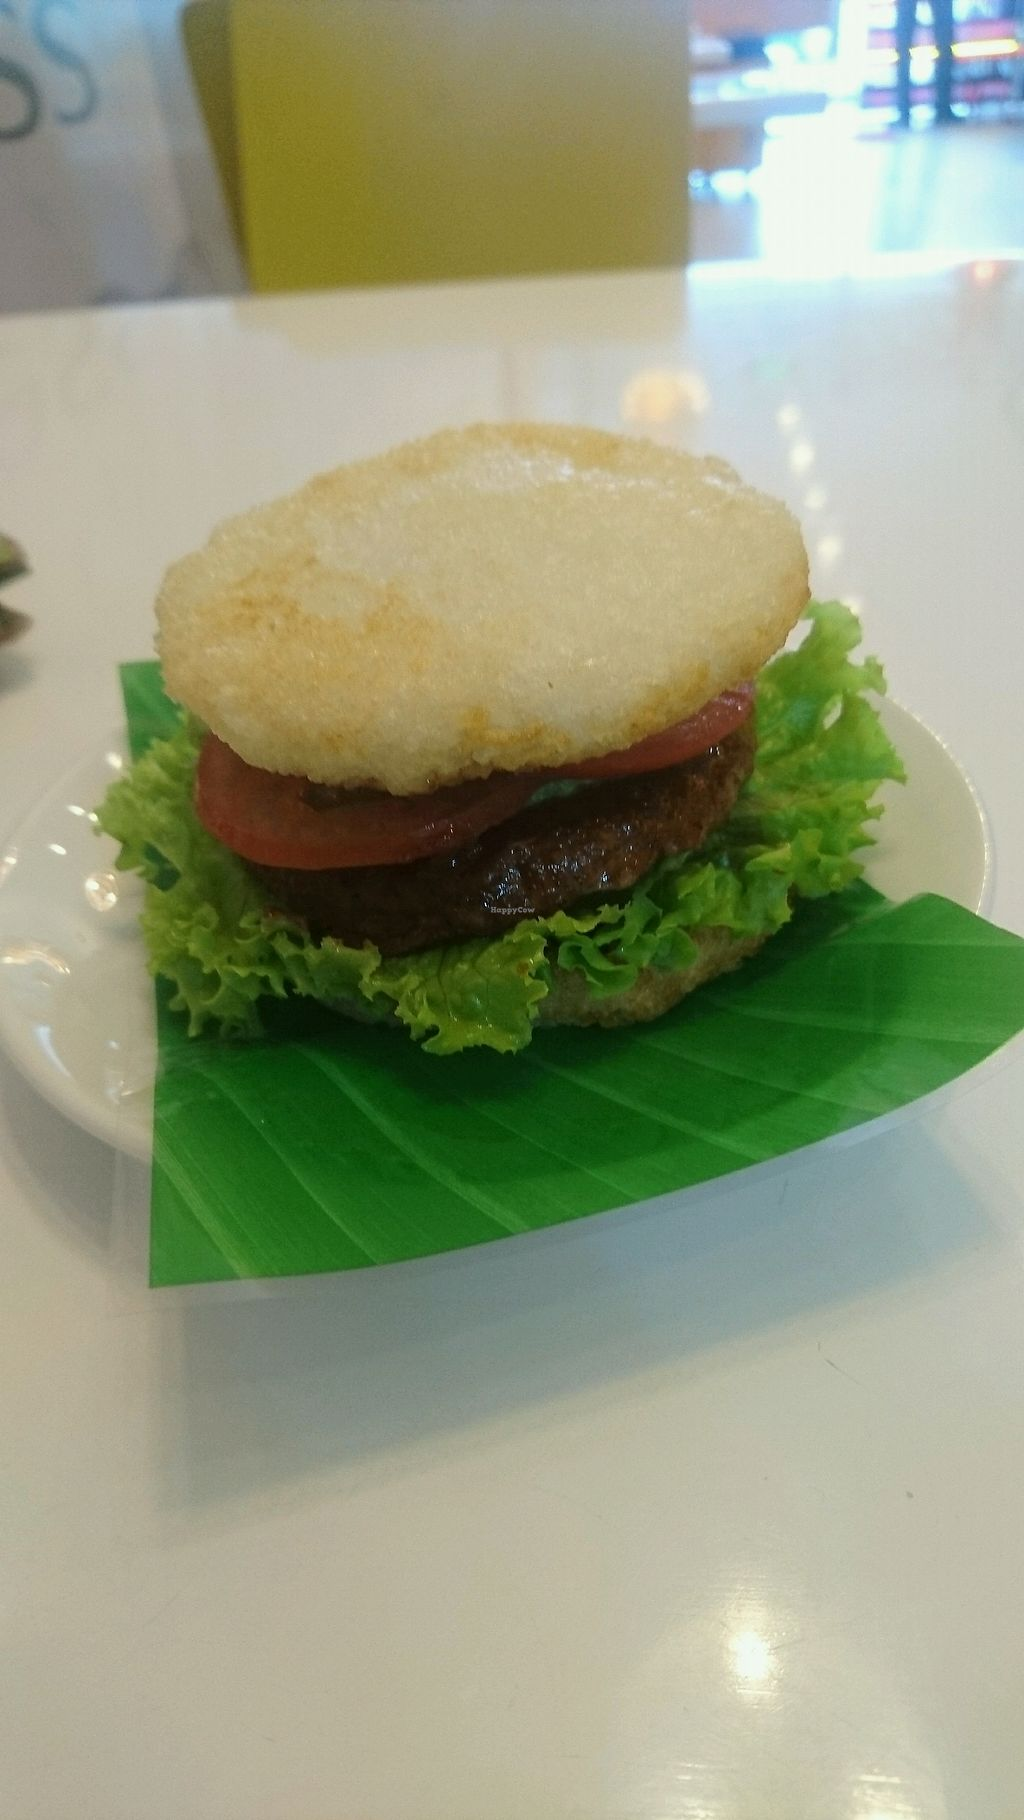 """Photo of Healthy Farm - Tran Hung Dao District 1  by <a href=""""/members/profile/jesse558"""">jesse558</a> <br/>rice burger <br/> November 6, 2017  - <a href='/contact/abuse/image/71752/322584'>Report</a>"""